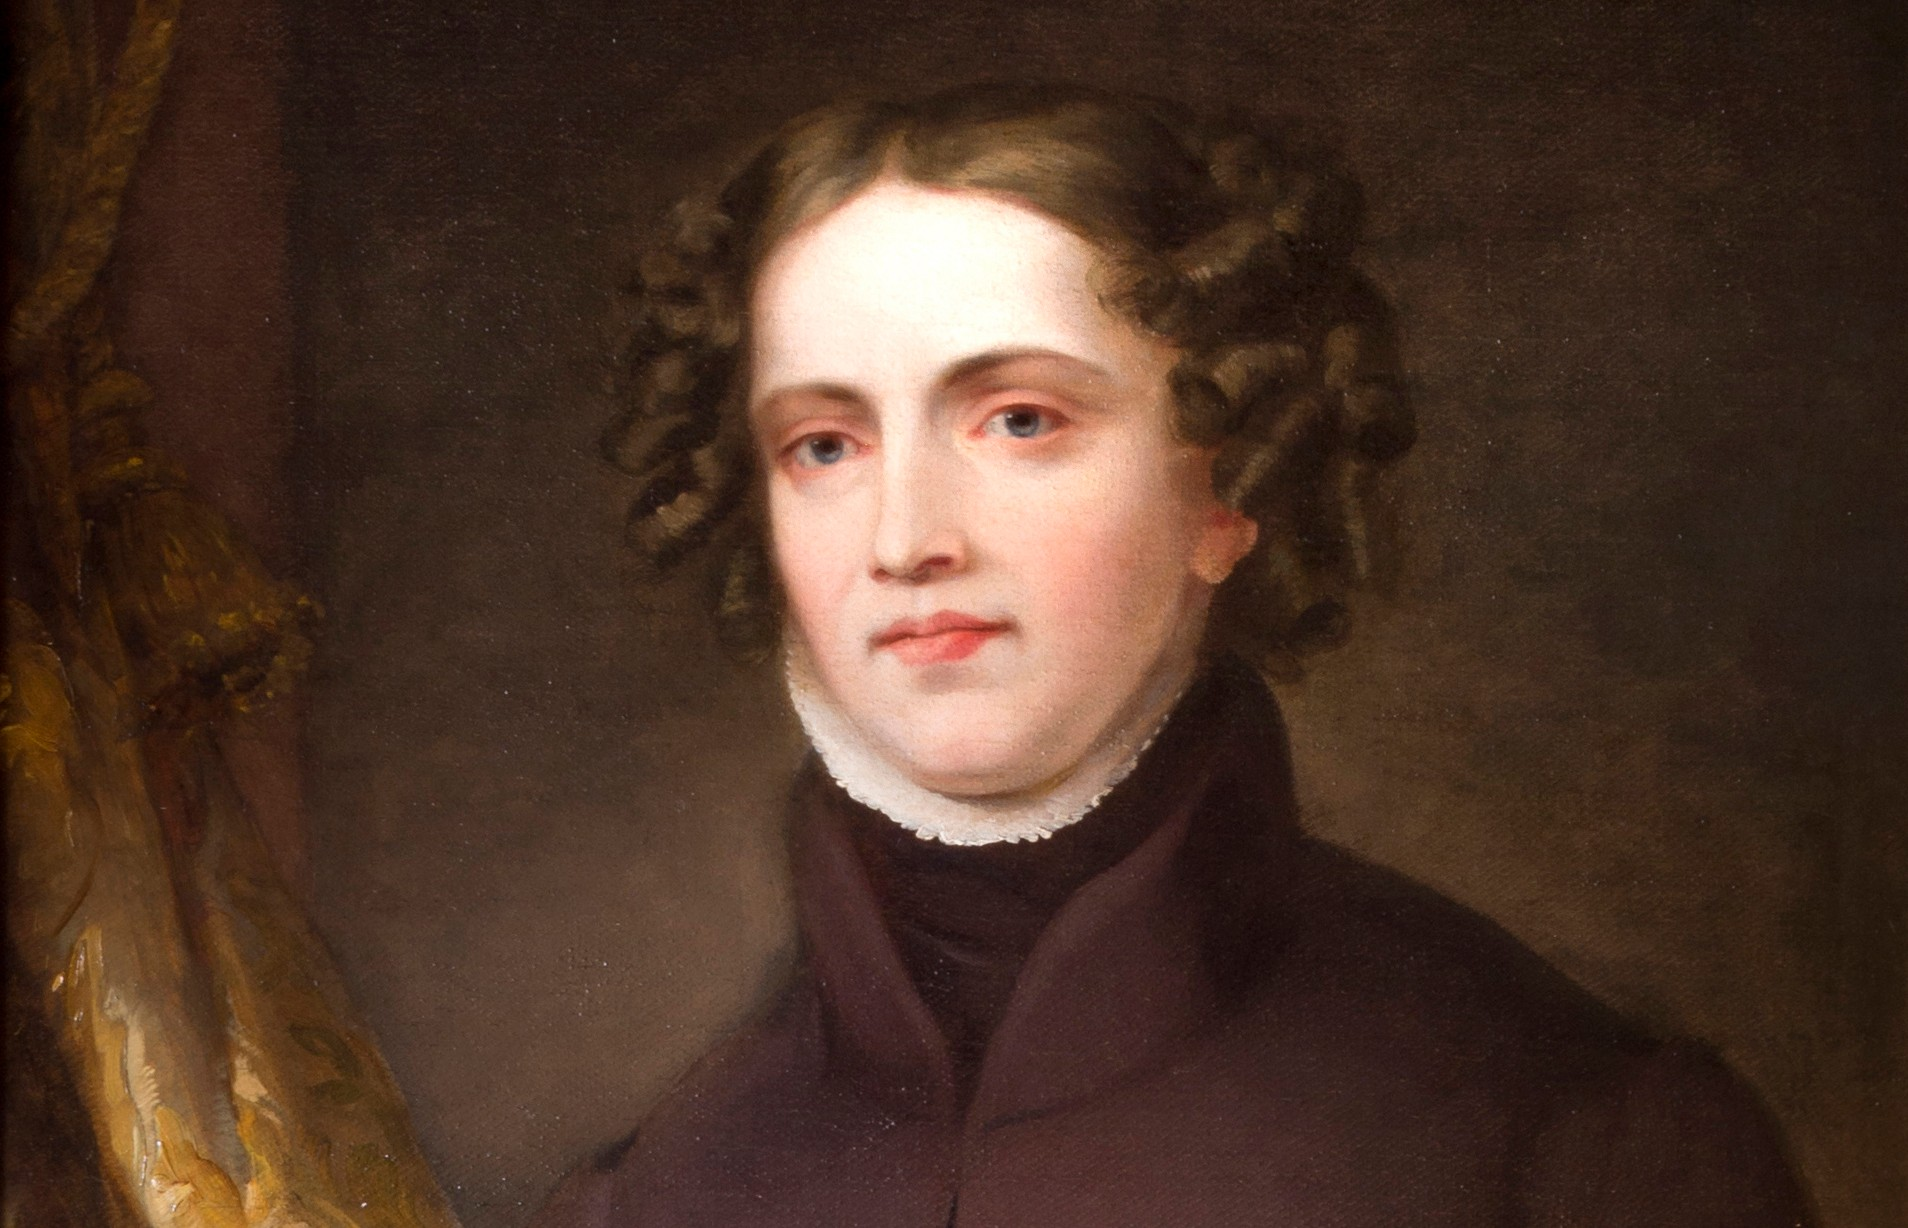 3822353 Anne Lister of Shibden Hall (oil on canvas) by Horner, Joshua (1812-84) (attr.to); 74x61 cm; Calderdale Museums Service, West Yorkshire, UK; (add.info.: Anne Lister (1791–1840) was a diarist, mountaineer, traveller and wealthy landowner of Shibden Hall, Yorkshire. ); British,  out of copyright.